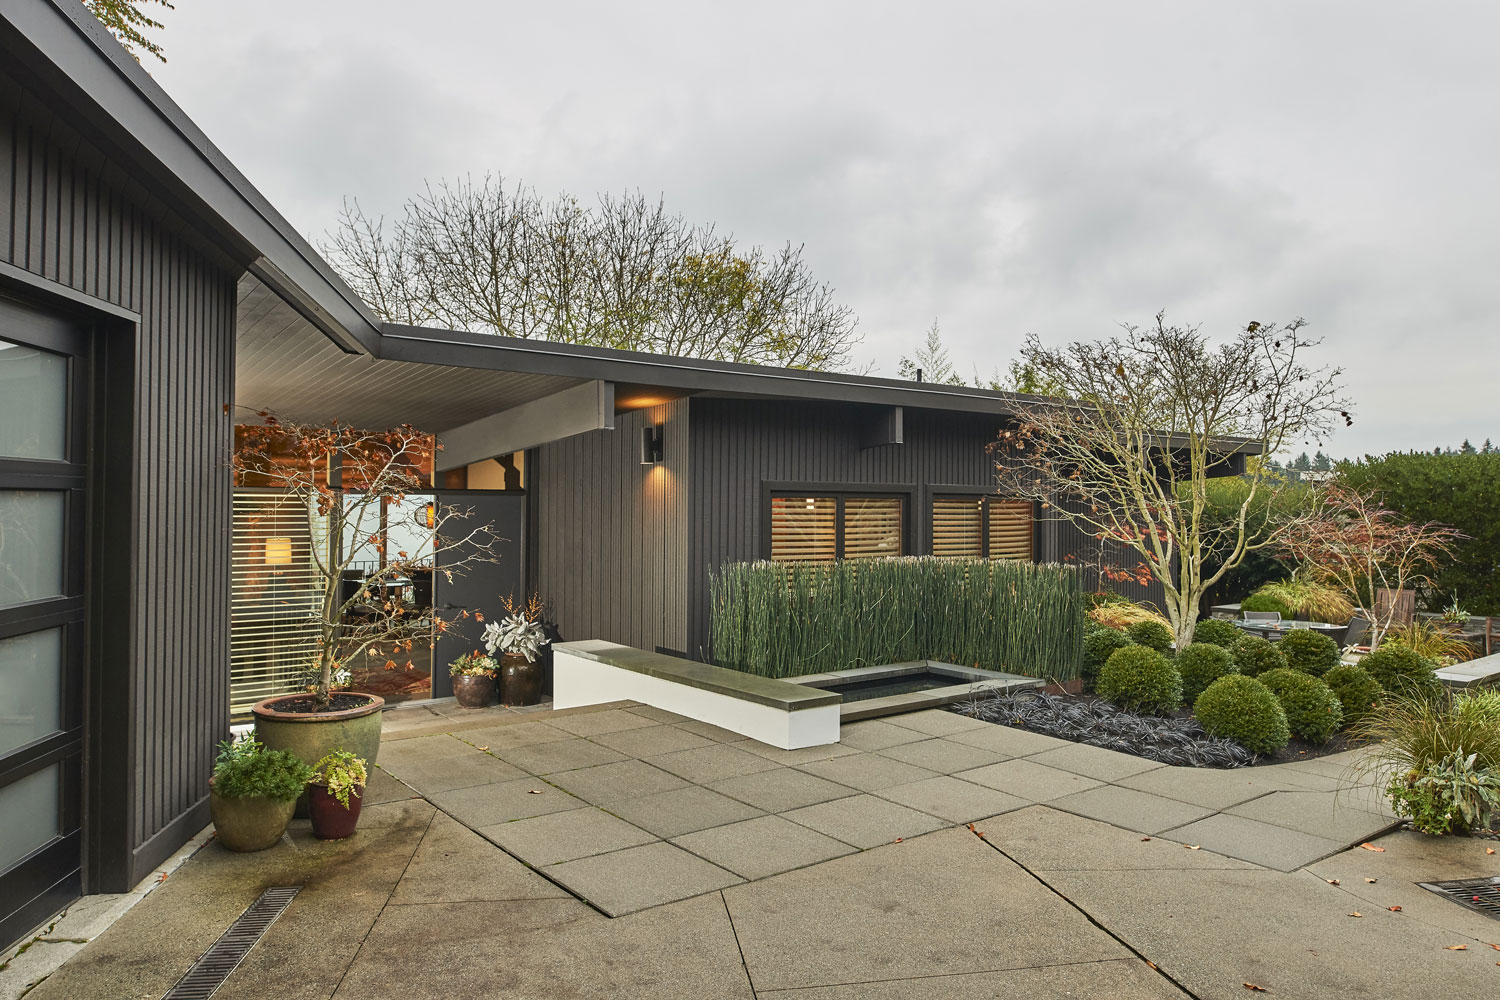 Northwest Mid-Century - Paul Kirk - Seattle Architects - CTA Design Builders - Mid-Century, Contemporary, Northwest, Remodel